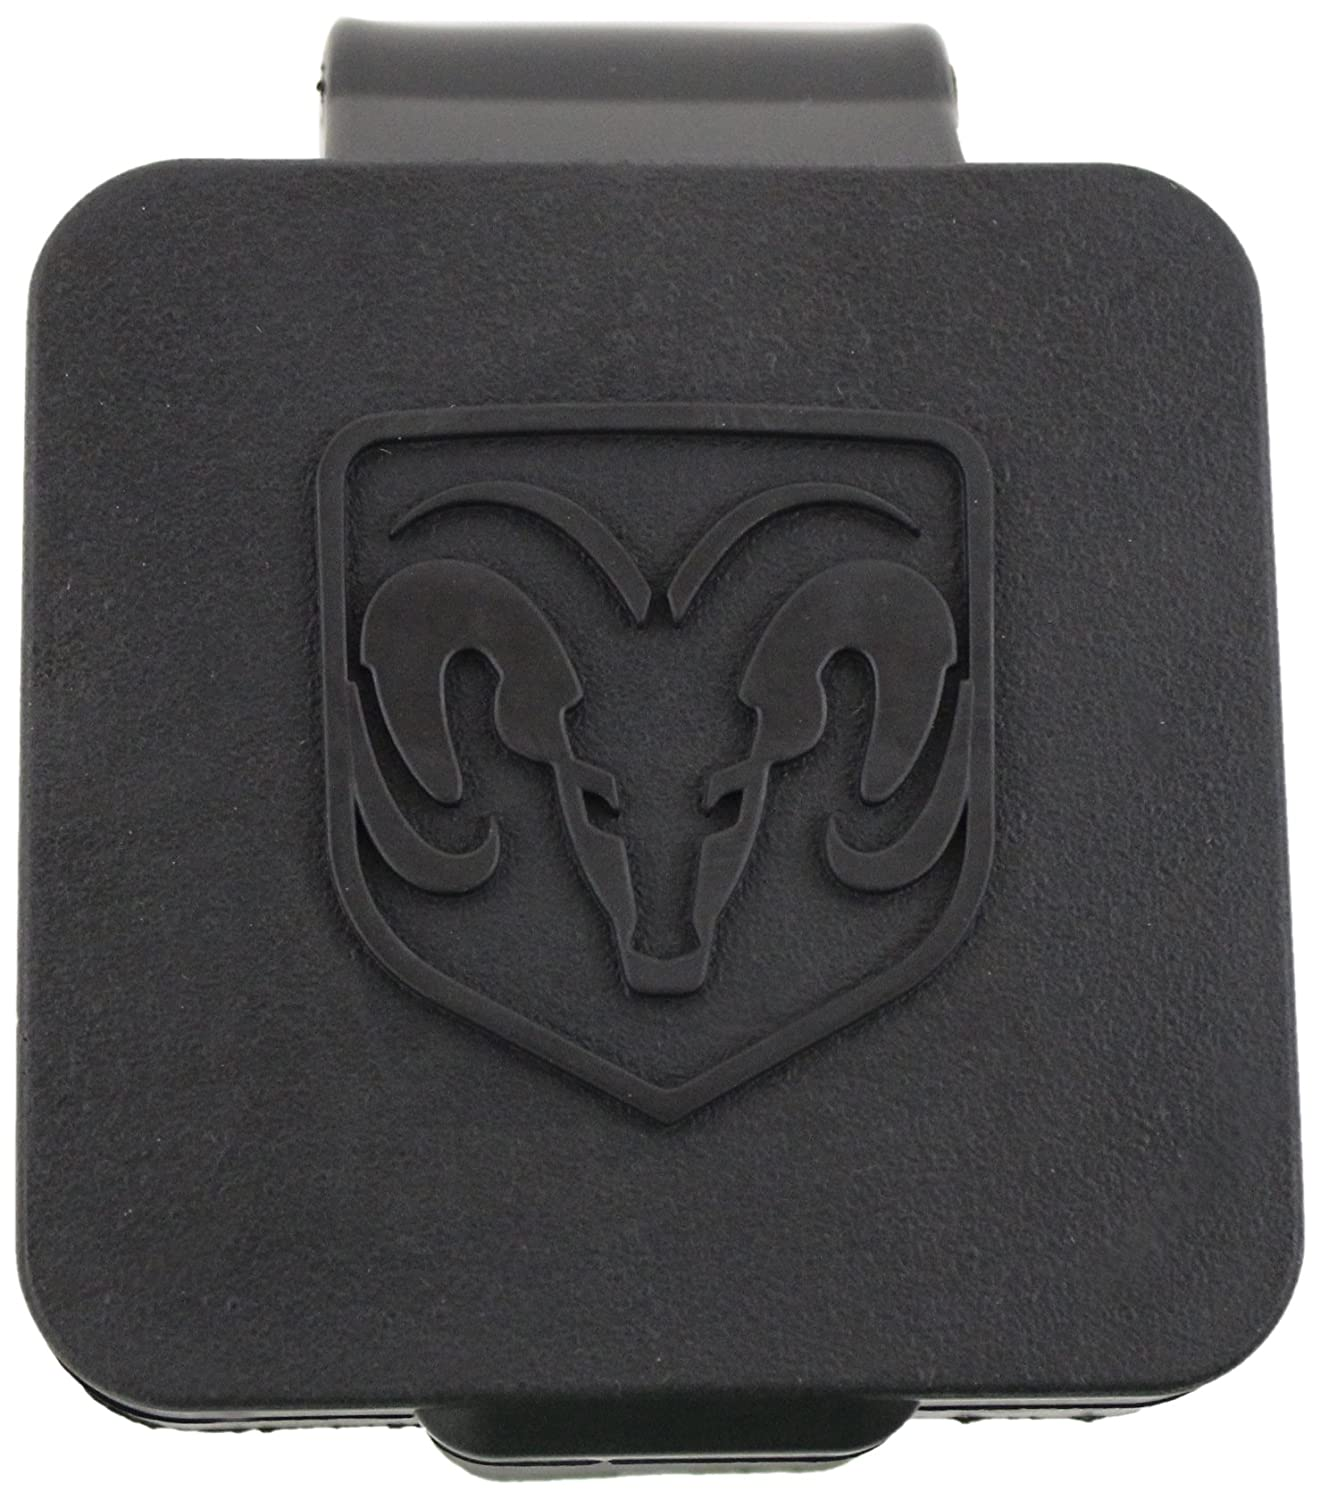 Genuine Dodge RAM Accessories 82208454AB Hitch Receiver Plug with RAM's Head Logo